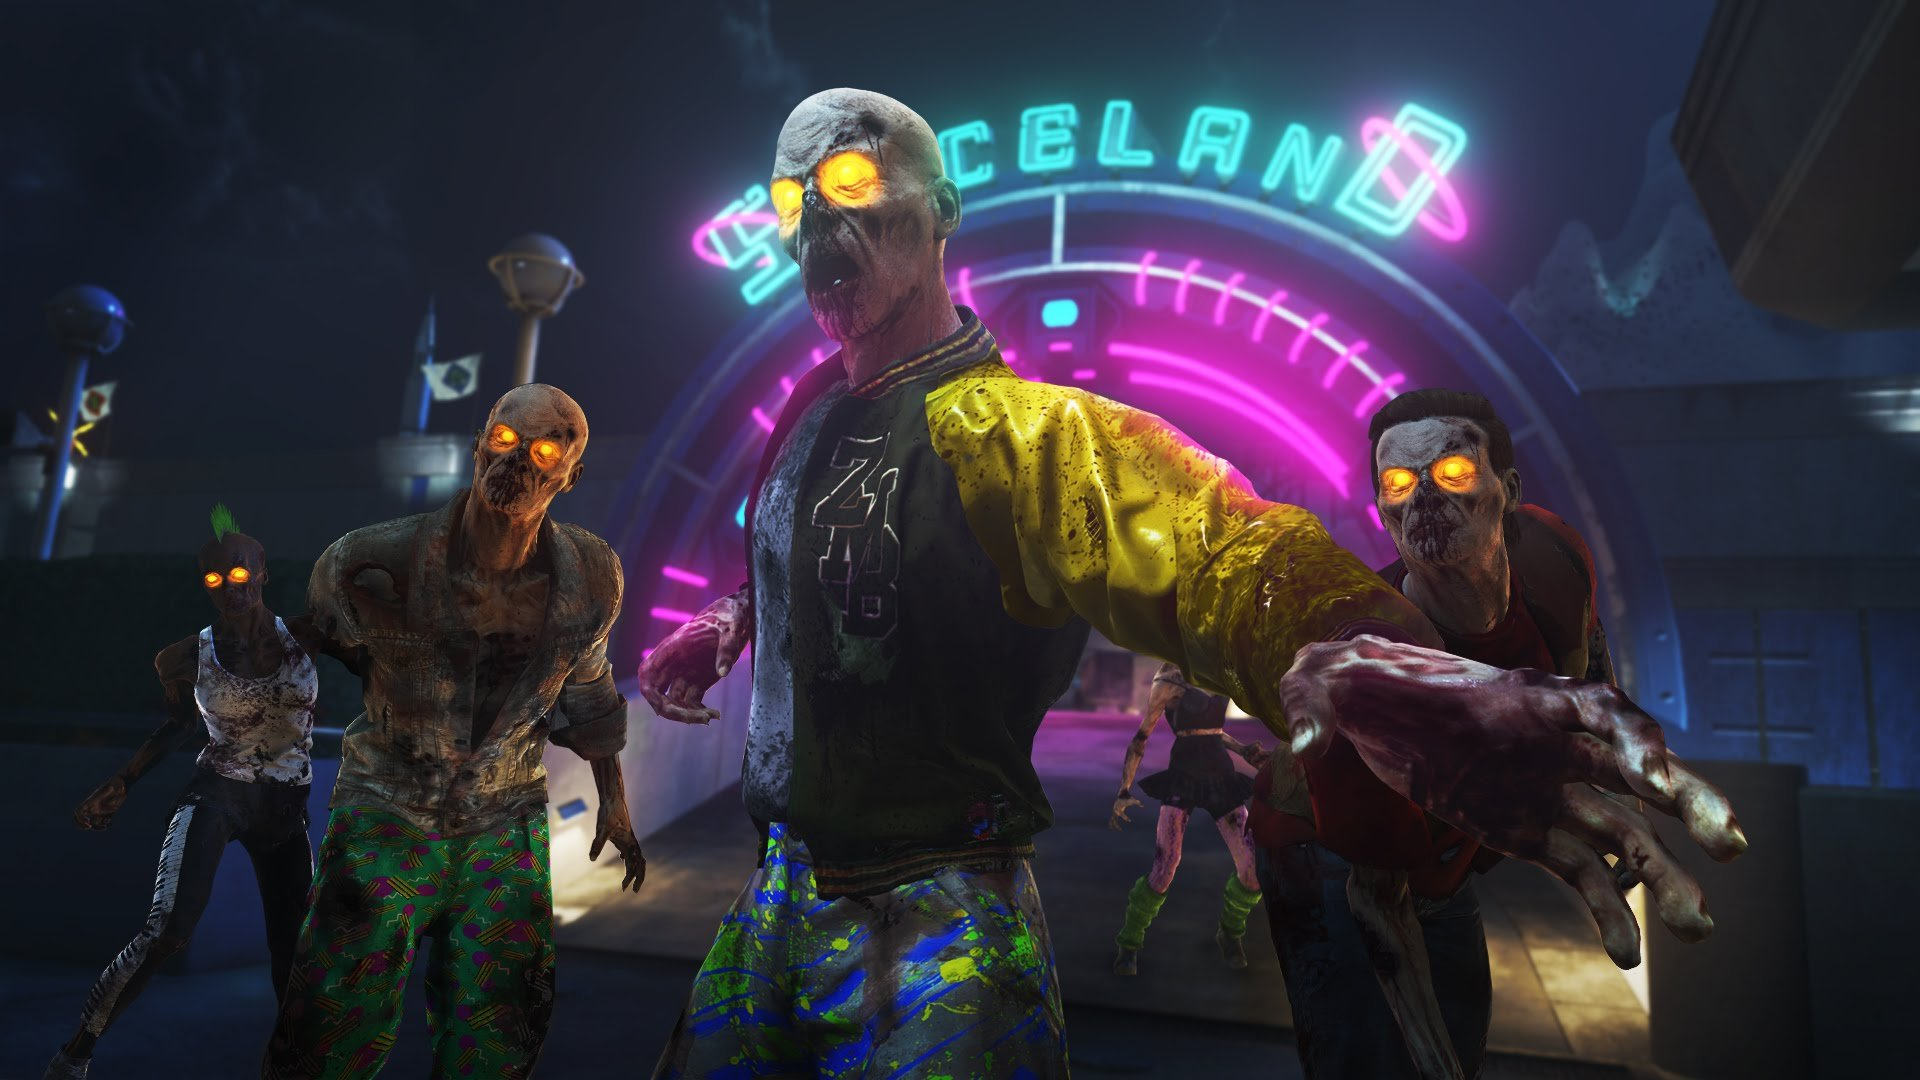 Call Of Duty Infinite Warfare Zombies In Spaceland Reveal - Call duty exo zombies trailer looks epic